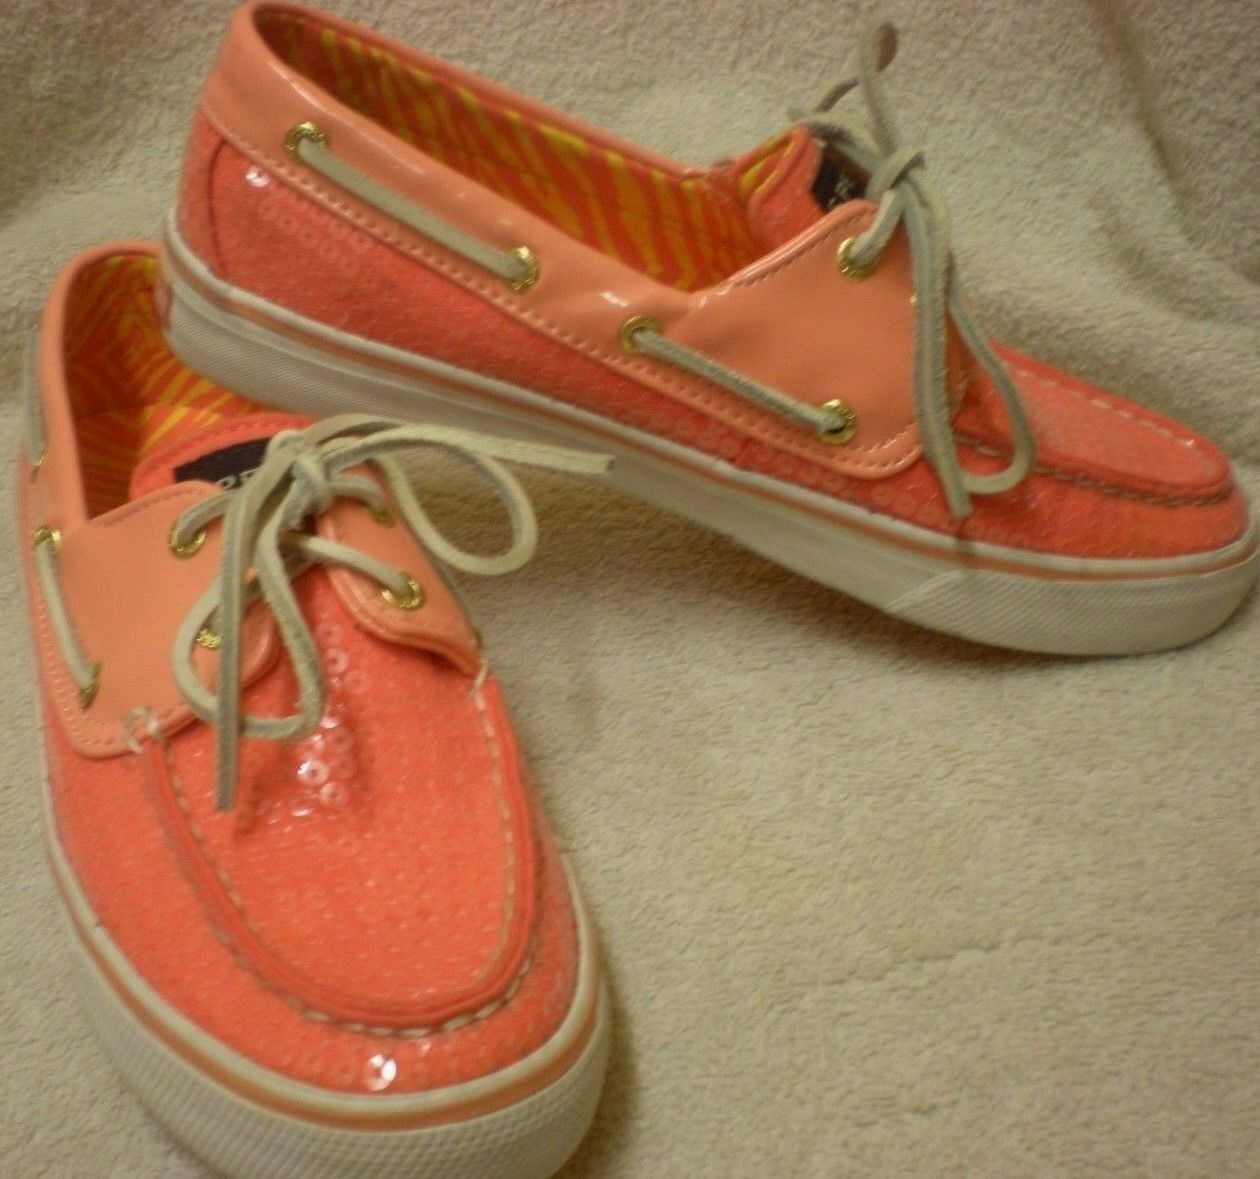 SPERRY Top-Sider Women's Peach Pink Sequins Top Boat shoes Size 7M   9447426